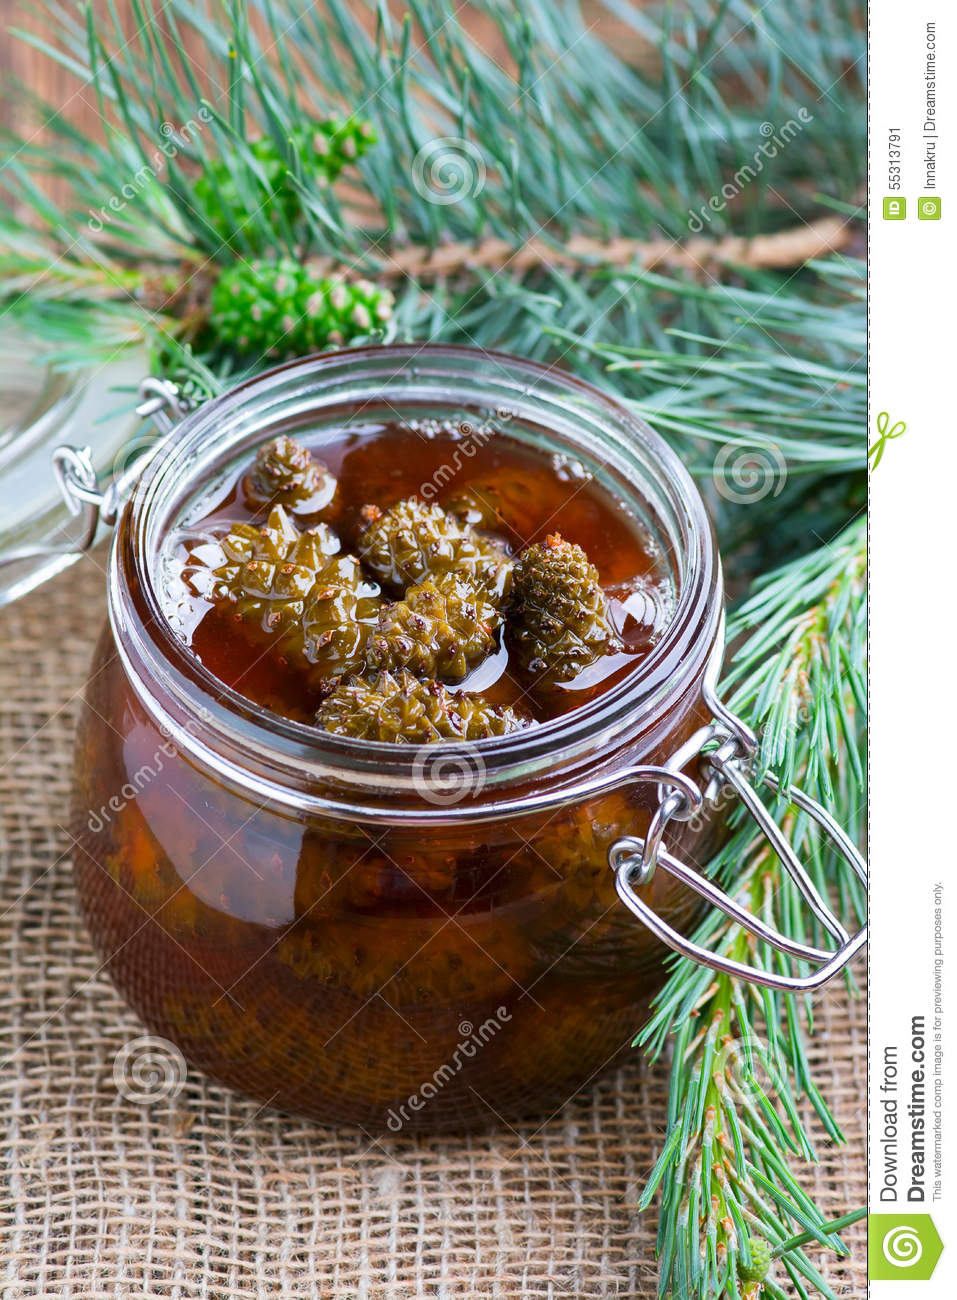 Pine cones jam. The most delicious cooking recipes 9